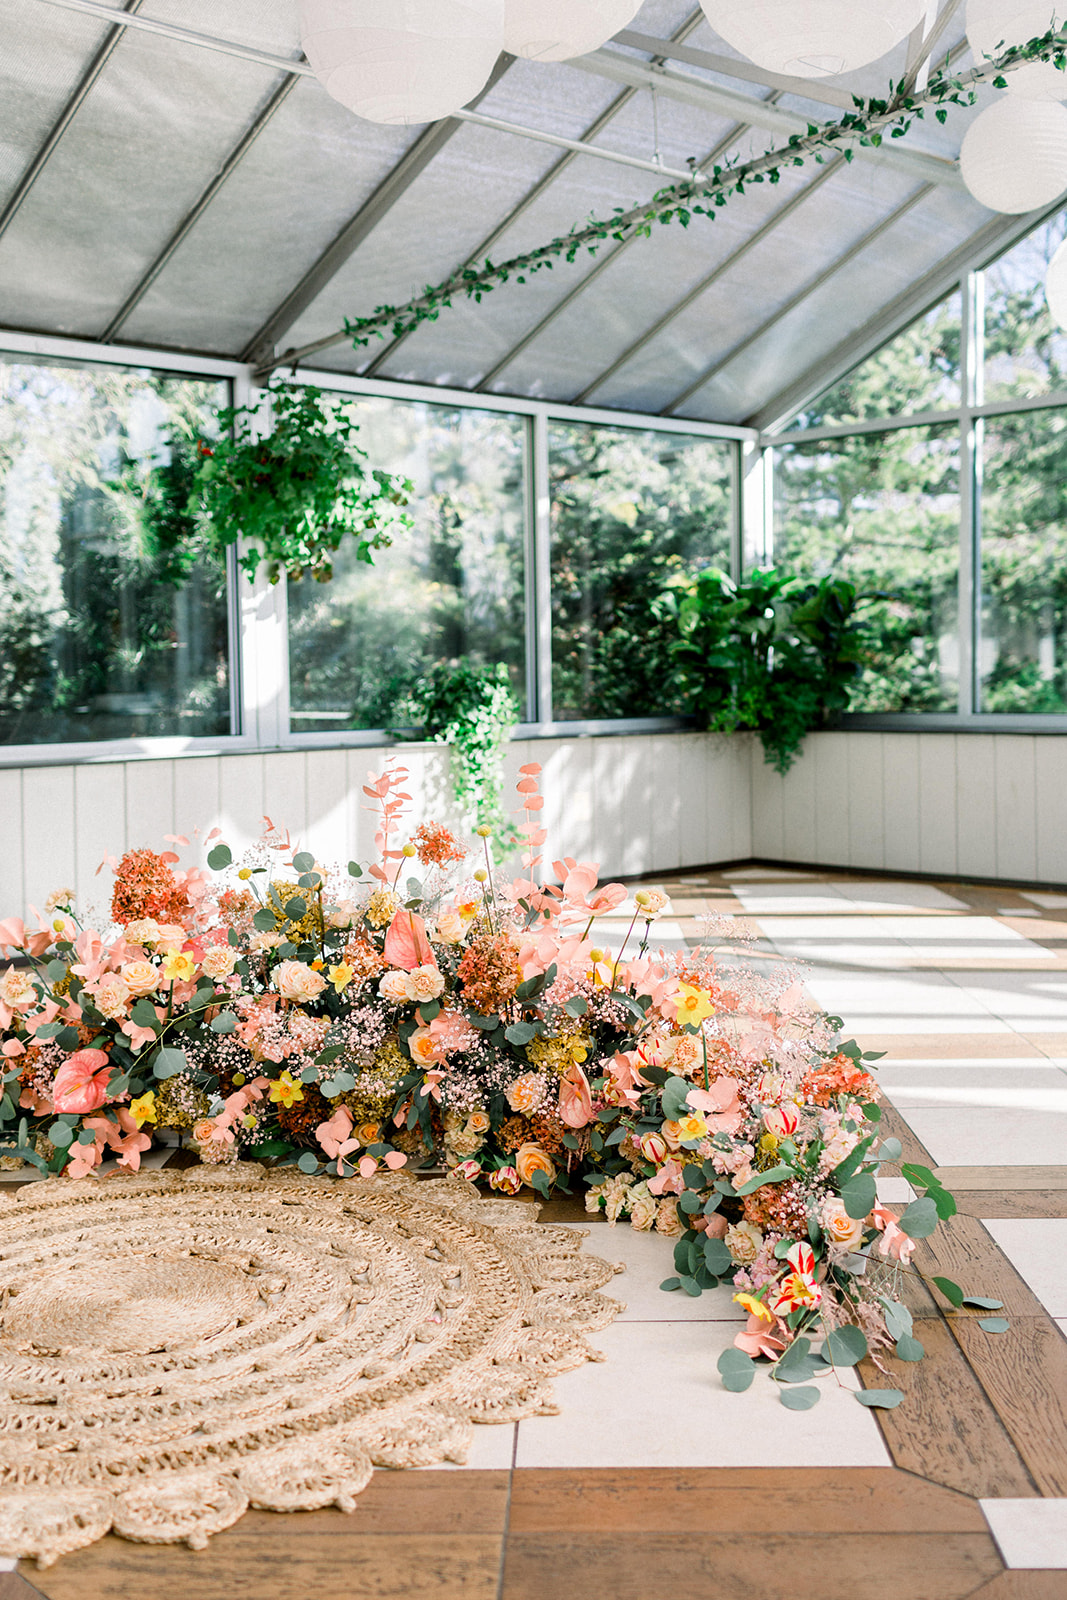 A half-circle of thick, lush florals, filled with everything from Anthurium, Garden Roses, Craspedia, and Ranunculus, created this unique shape floating above the ground.